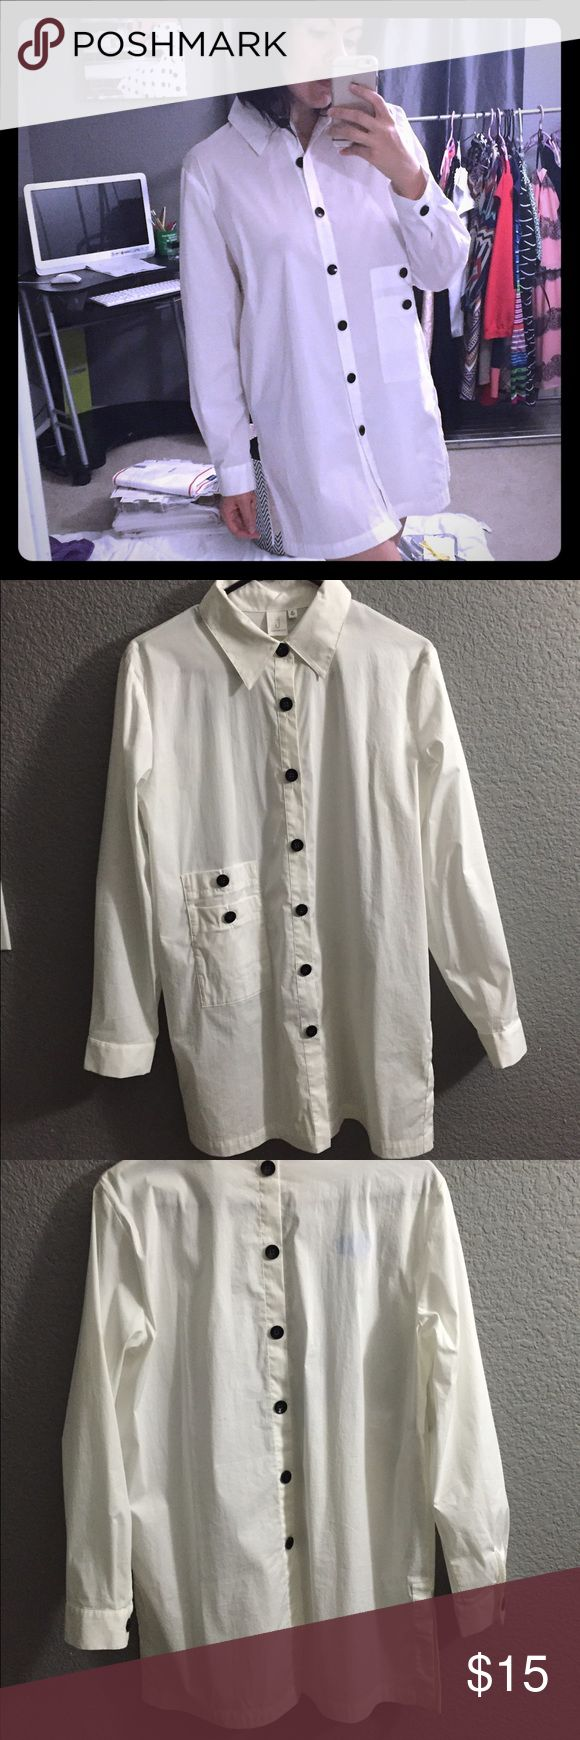 💋J jones New York men's shirt dress size M💋 I've used it 2x ones as a daring dress with over the knee boots and as a Halloween costume for a sexy Doctor with netted pantyhose. It looks like a Doctor's coat. With 2 layered front pockets and black buttons from top to bottom on the front and back it also has a slit on each side. J jones New York Dresses Mini